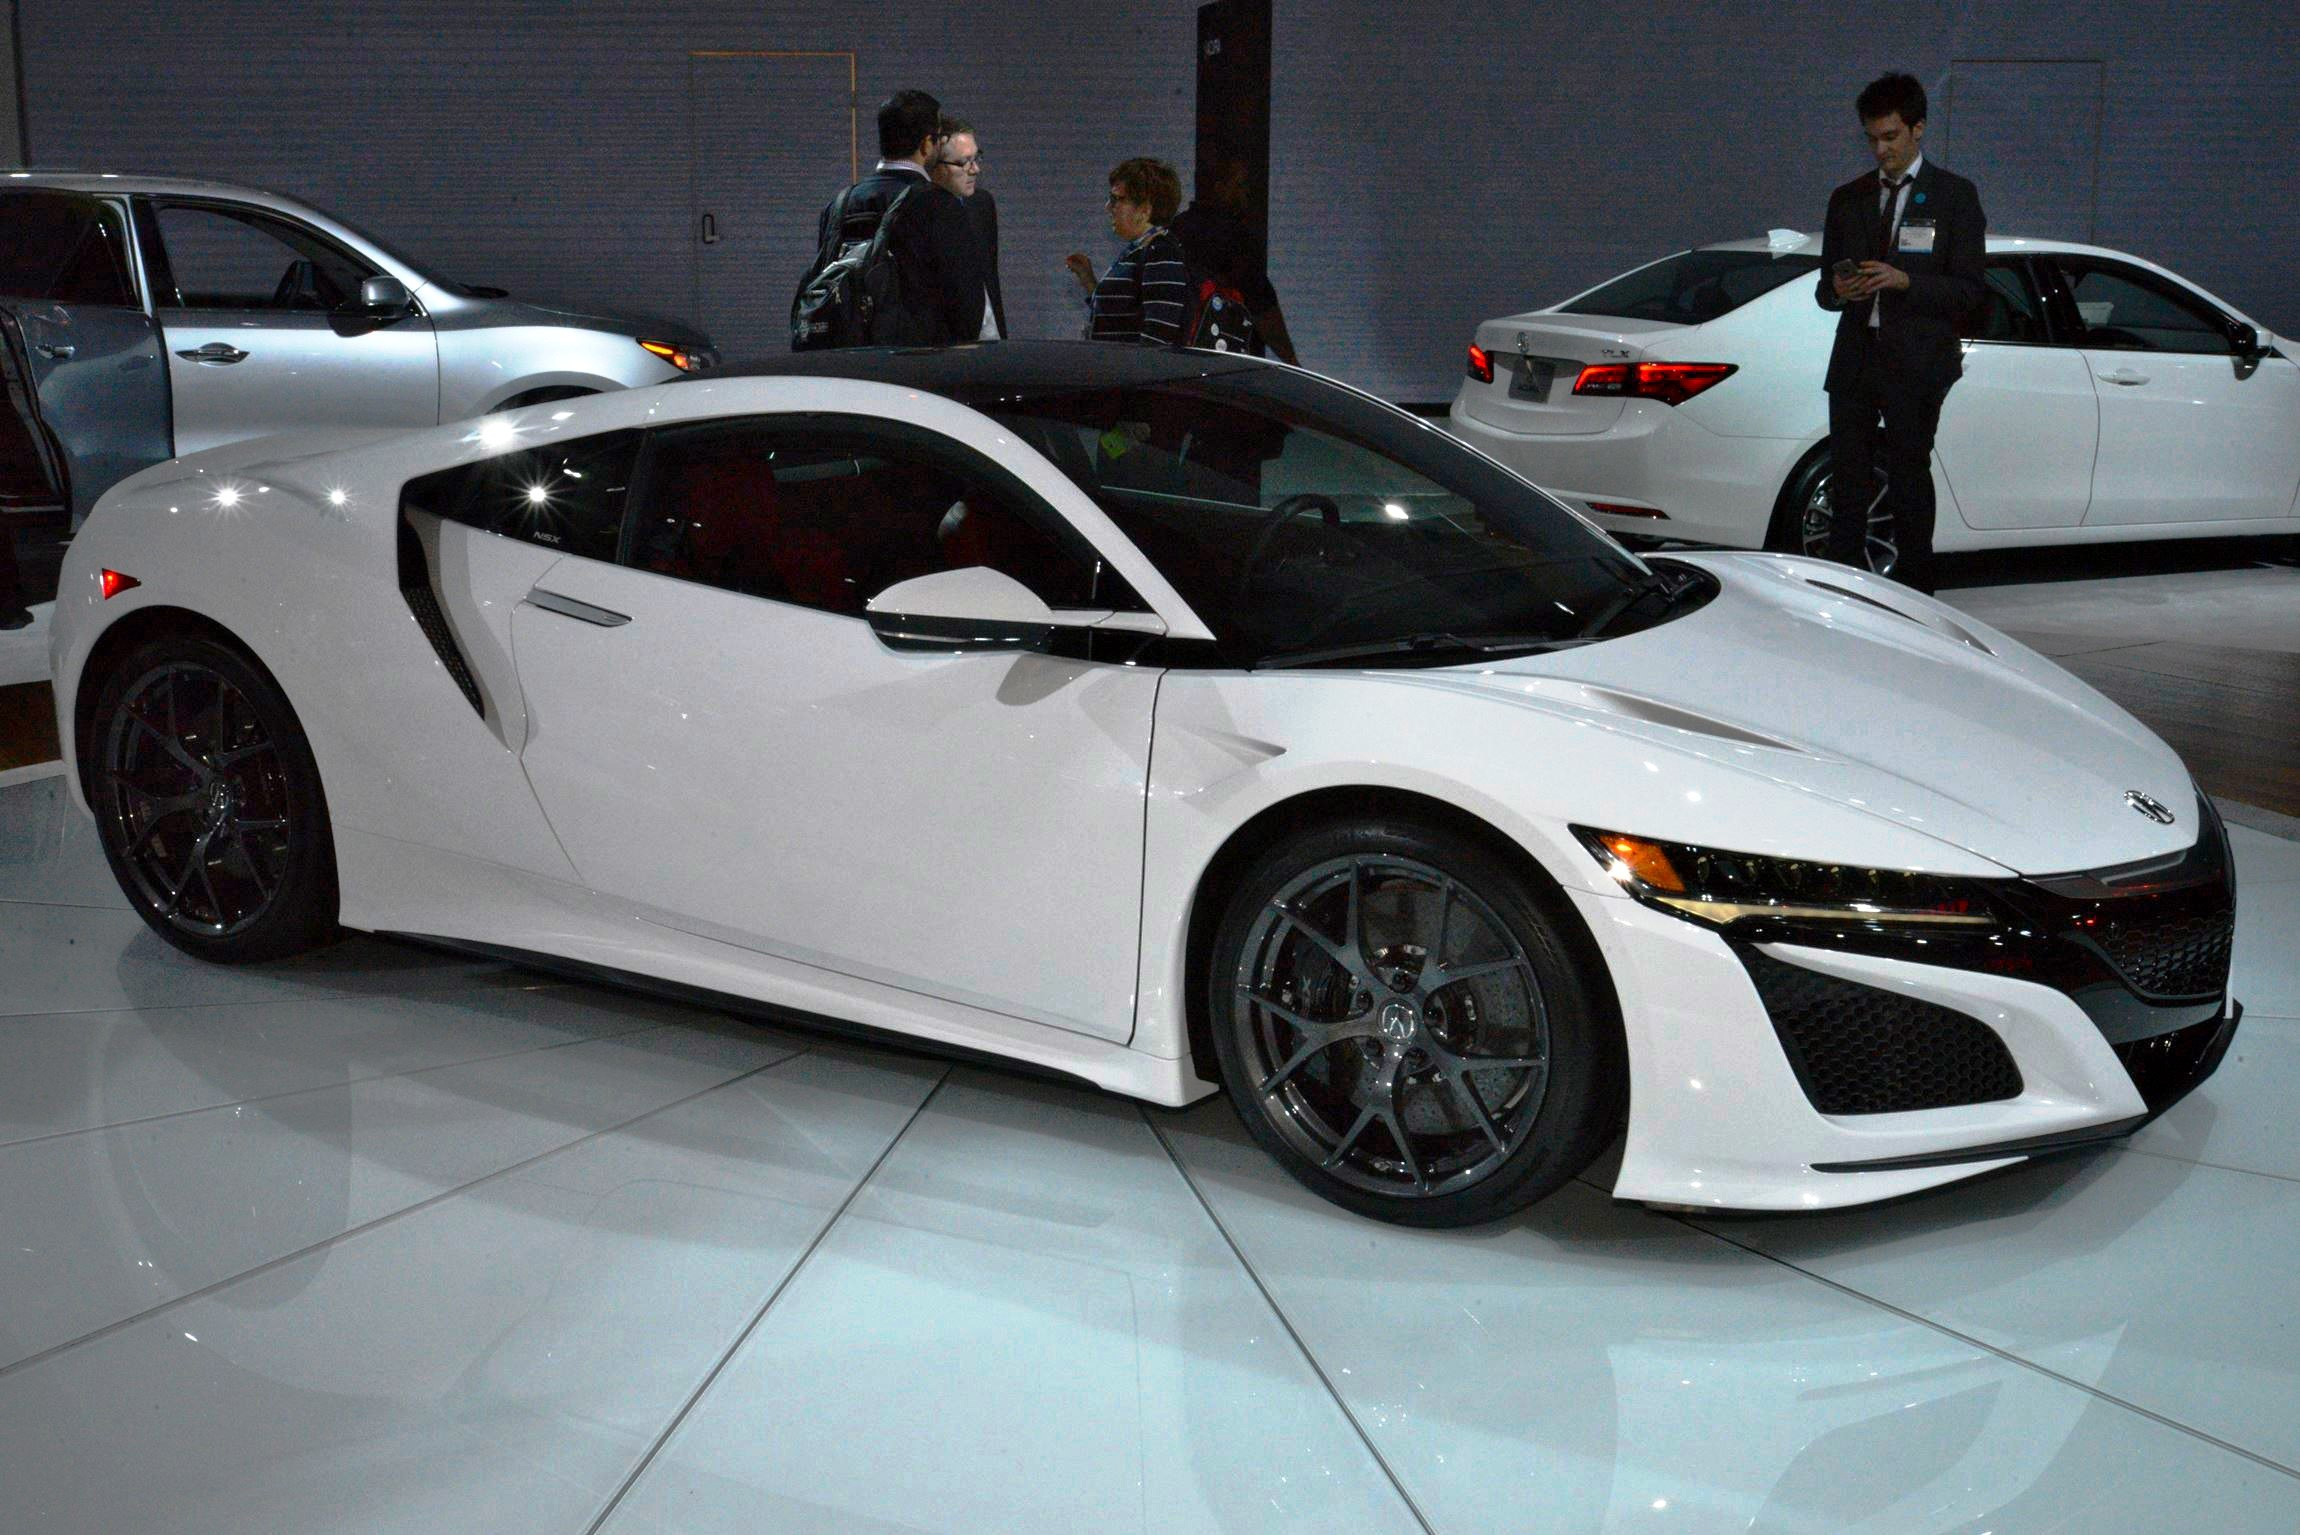 2017 Acura NSX white 1 – Car-Revs-Daily.com